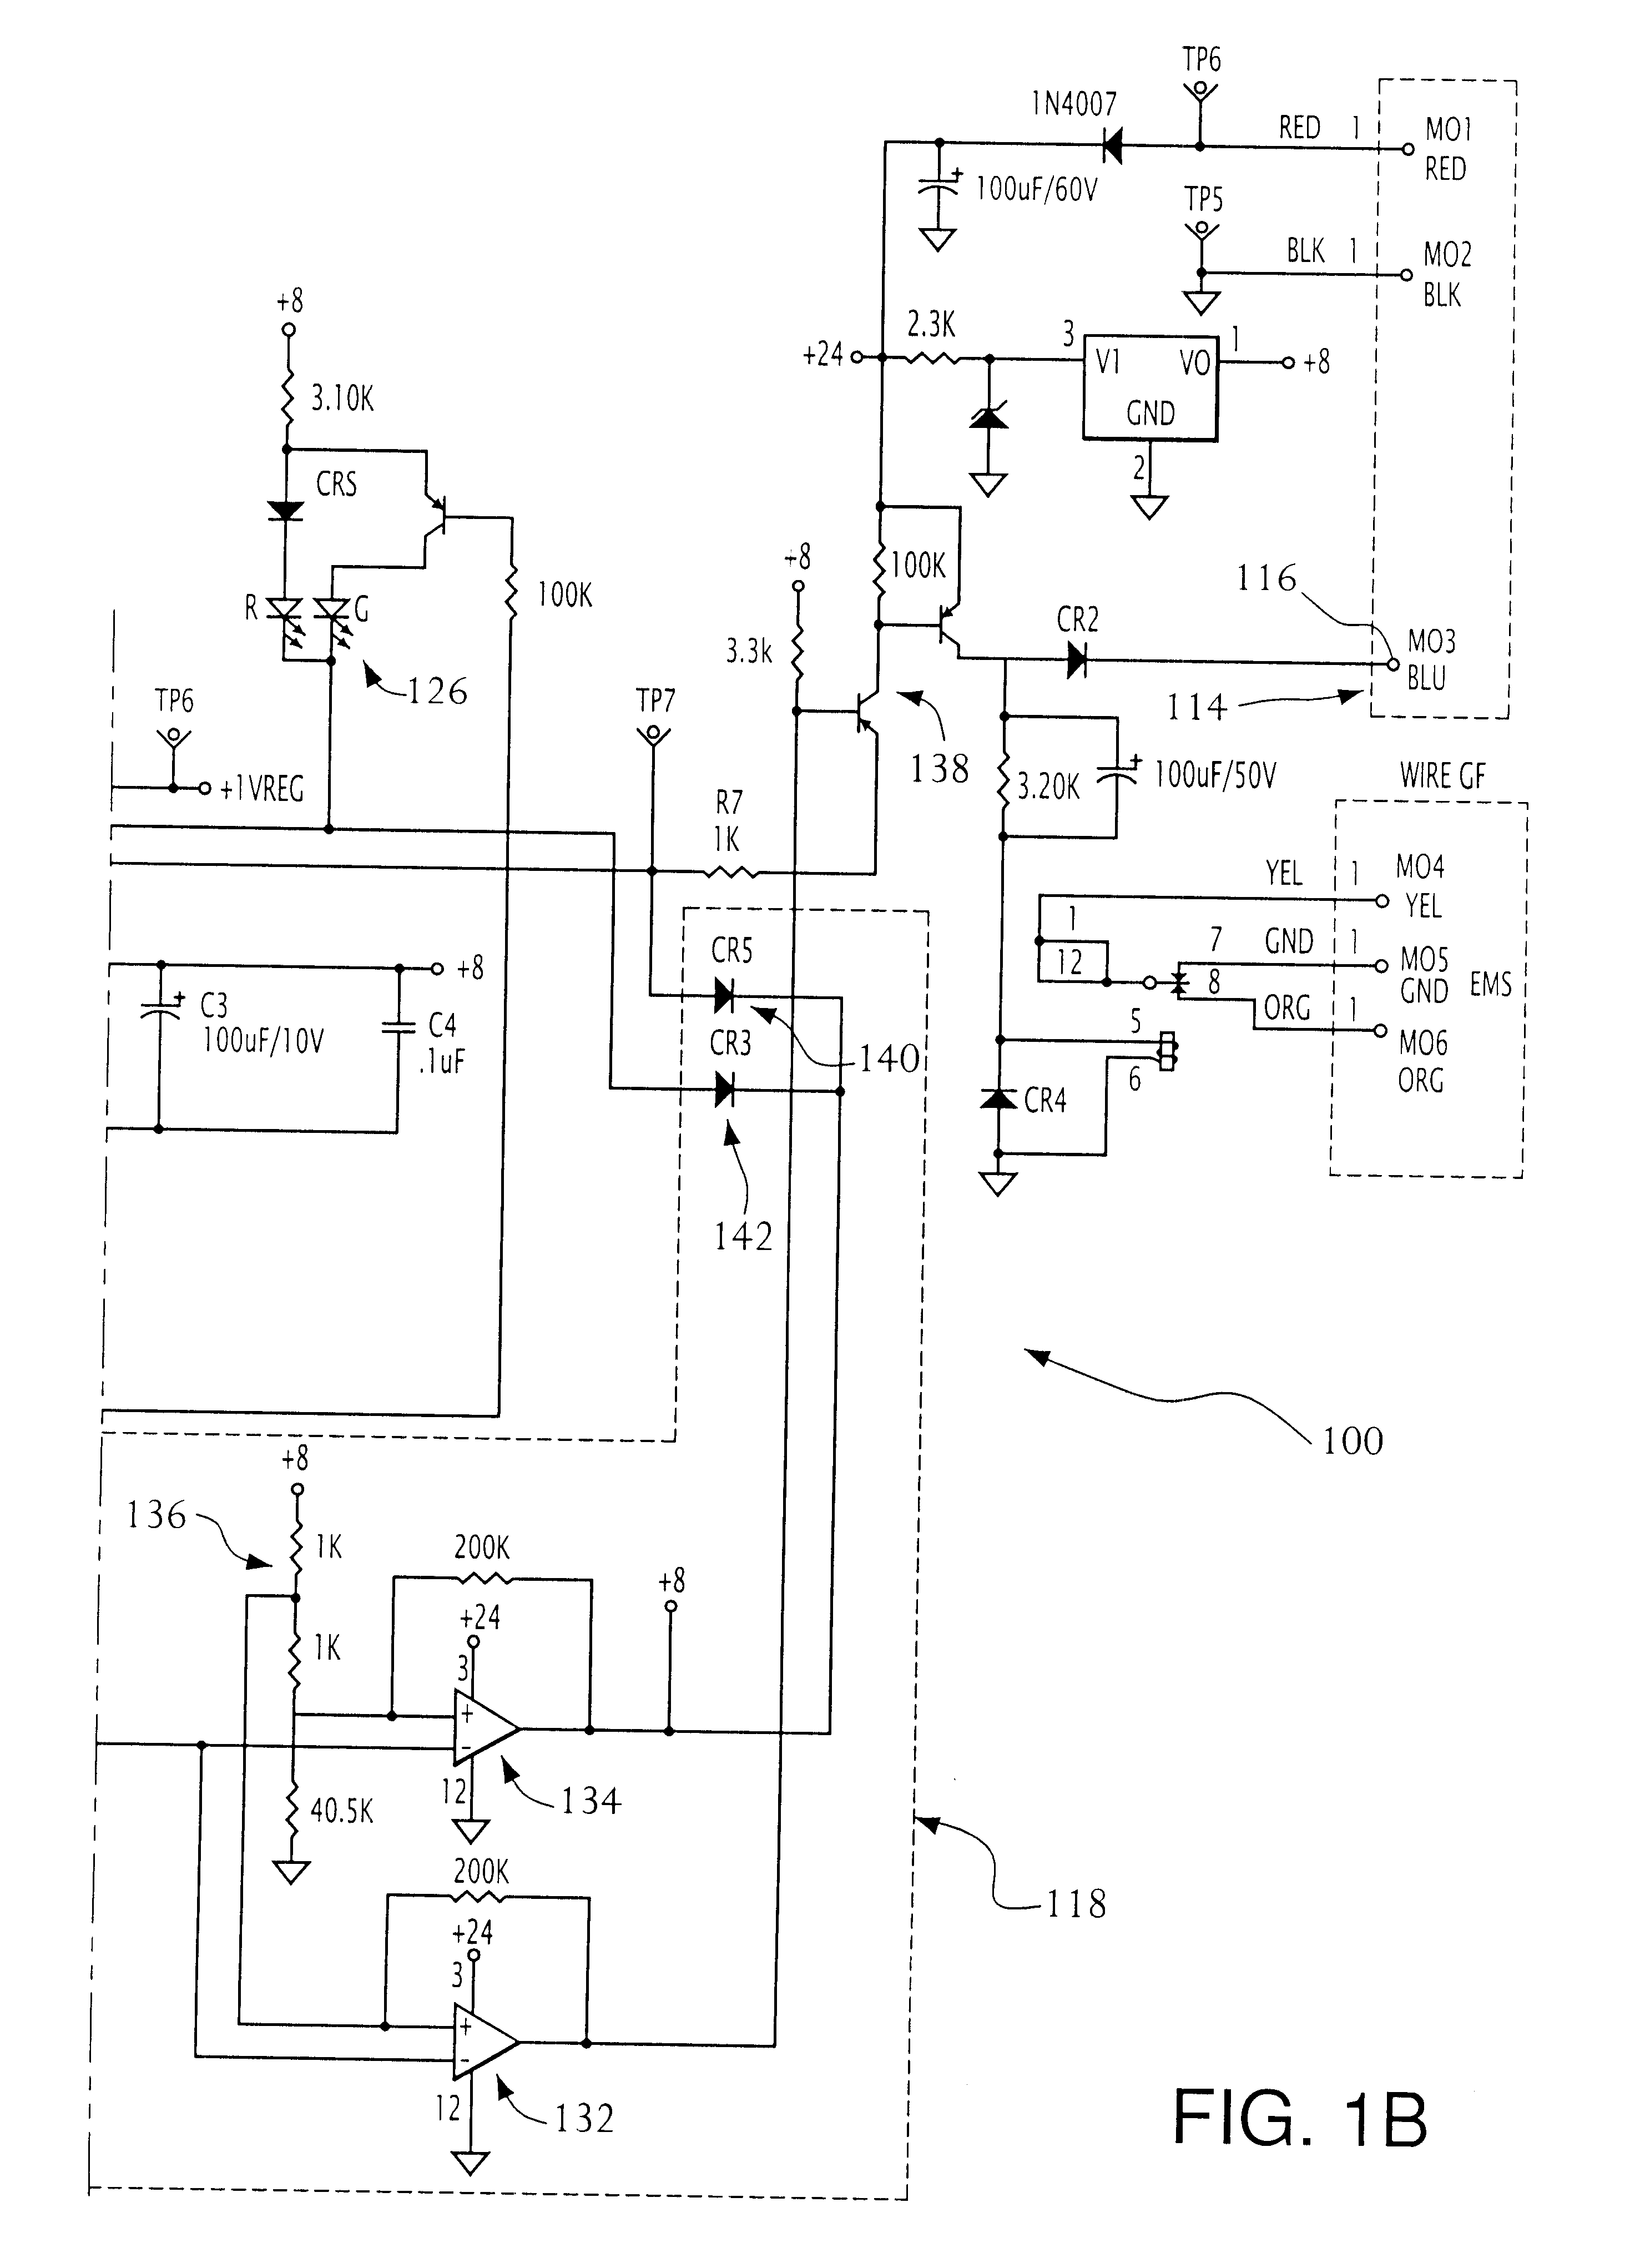 timer switch circuit diagram the wiring diagram timer switch circuit diagram vidim wiring diagram circuit diagram